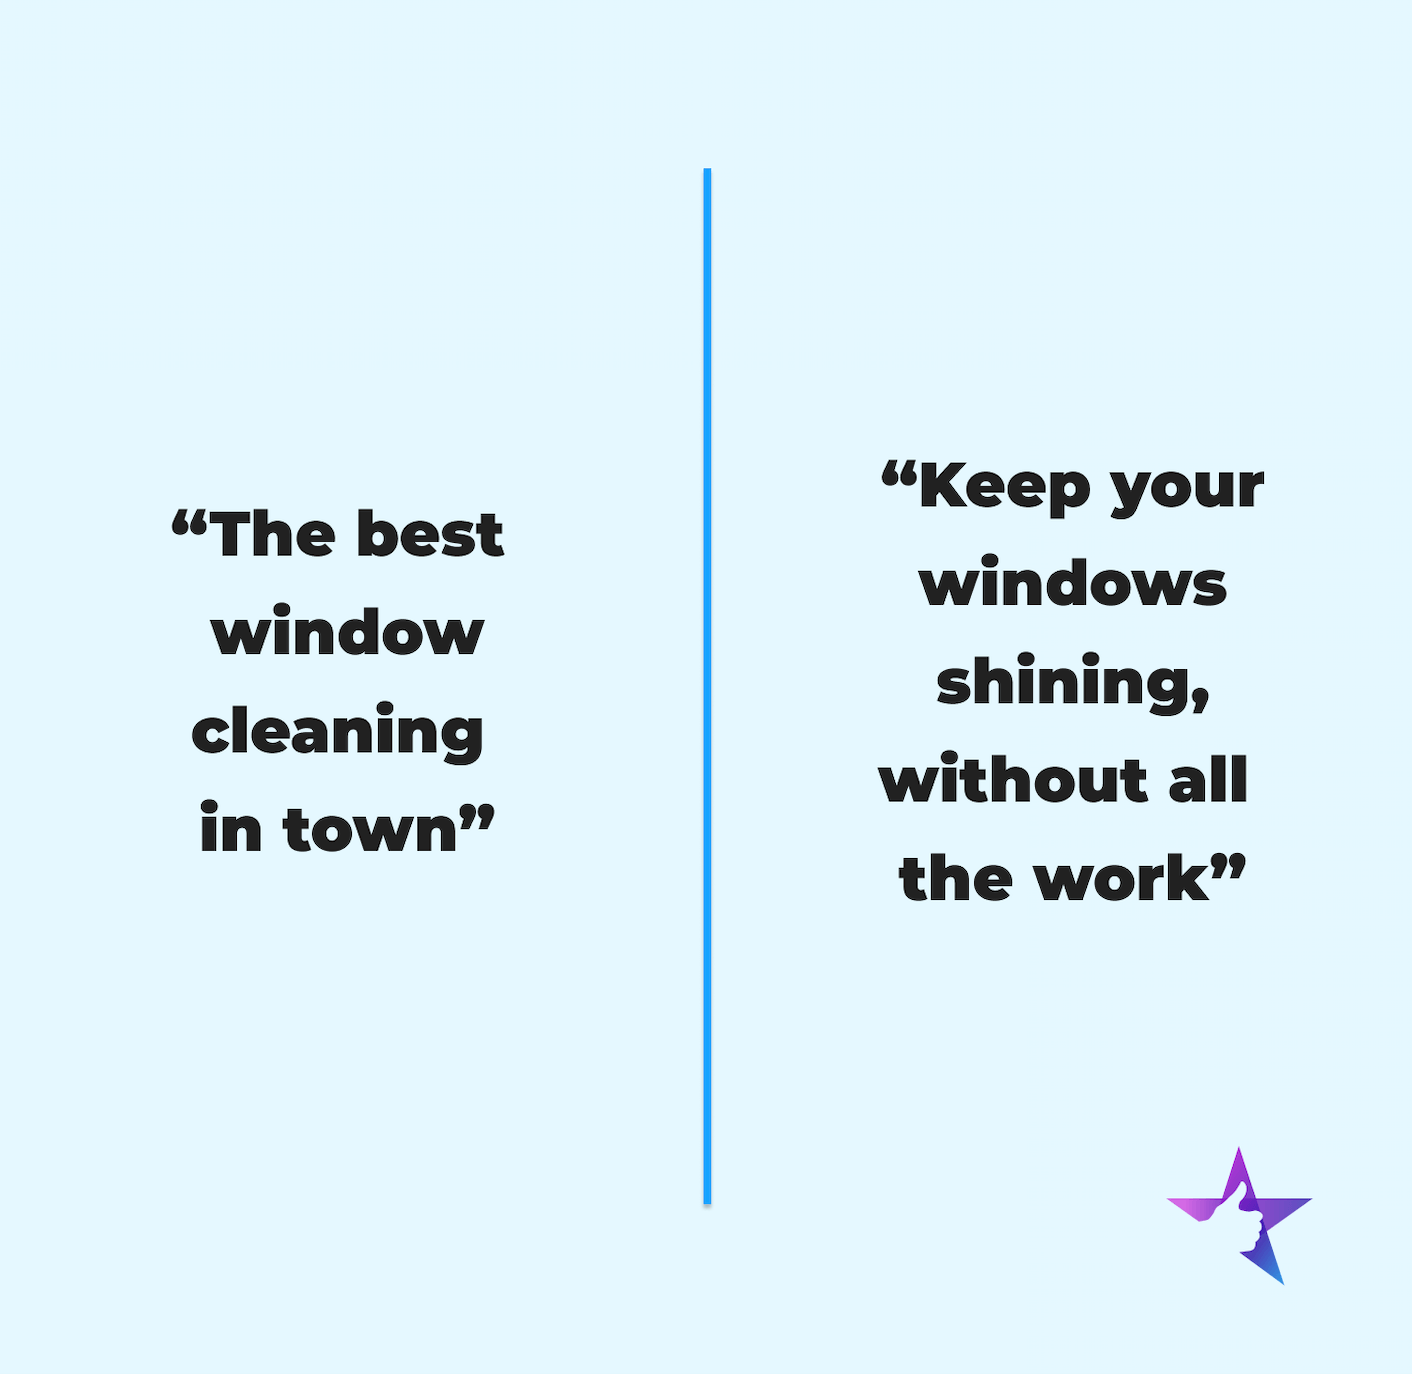 compare and contrast copy samples for a window cleaning website